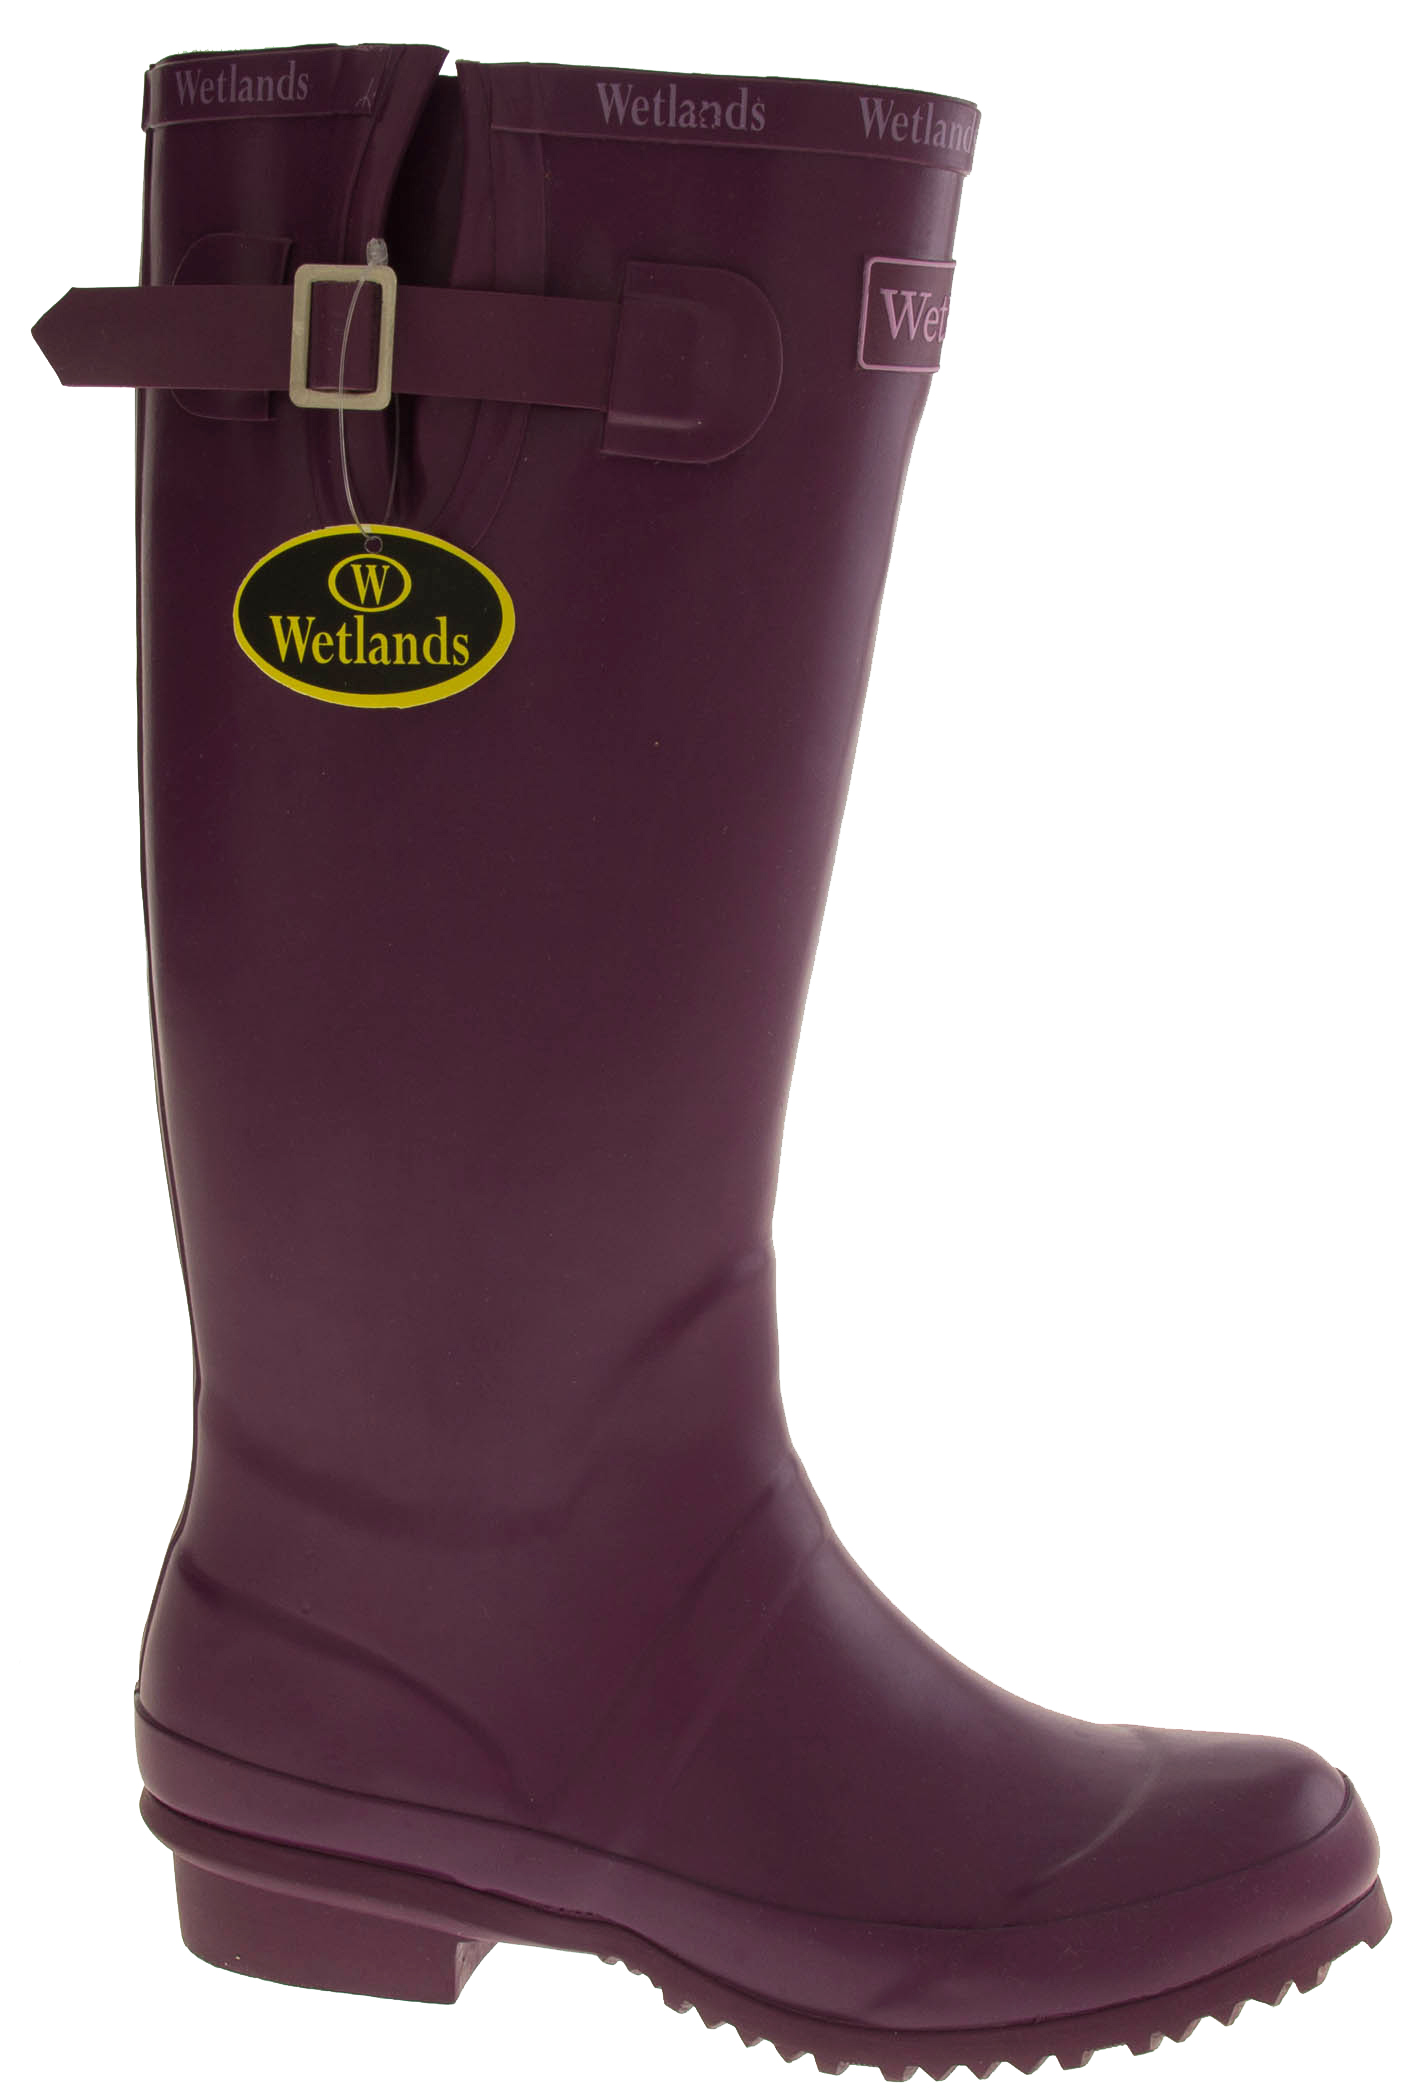 Womens wetlands wellies ladies wellington boots festival for Garden boots for women